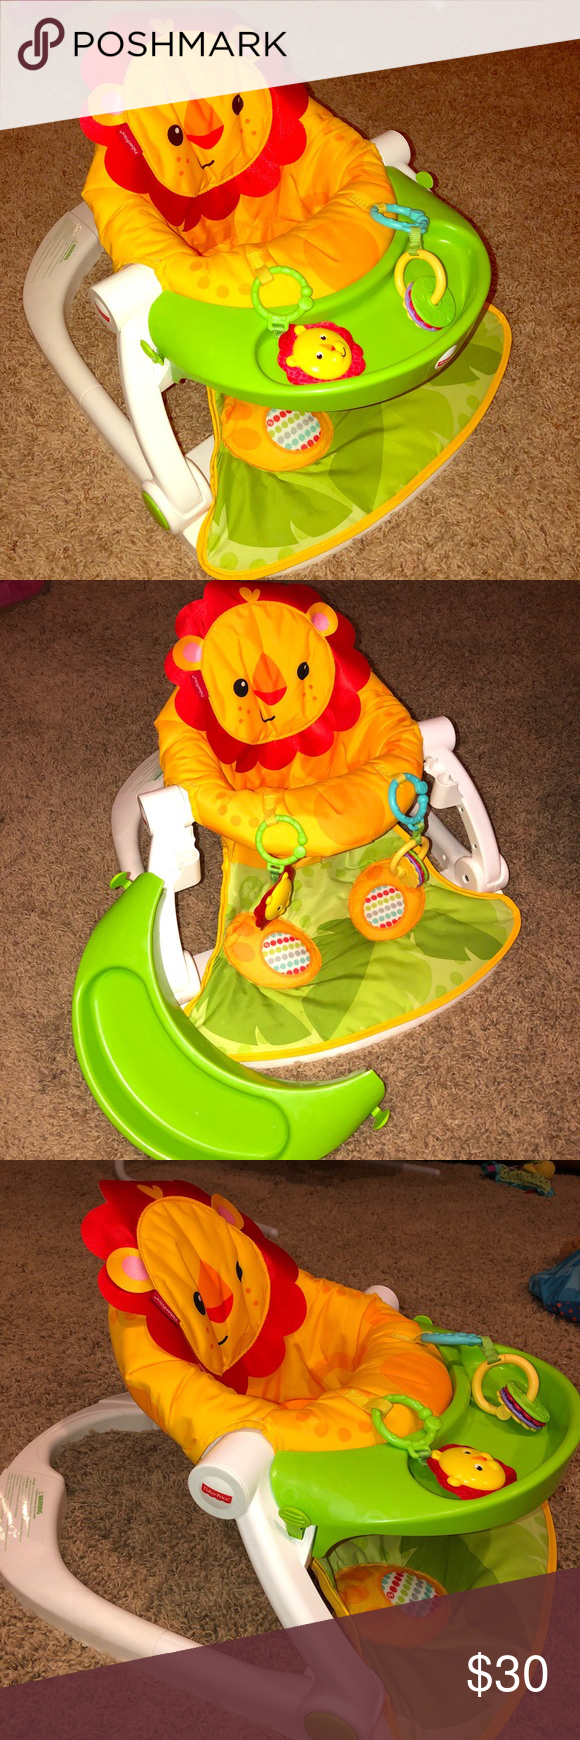 Fisher Price Sit Me Up Floor Seat Floor Seating Fisher Price